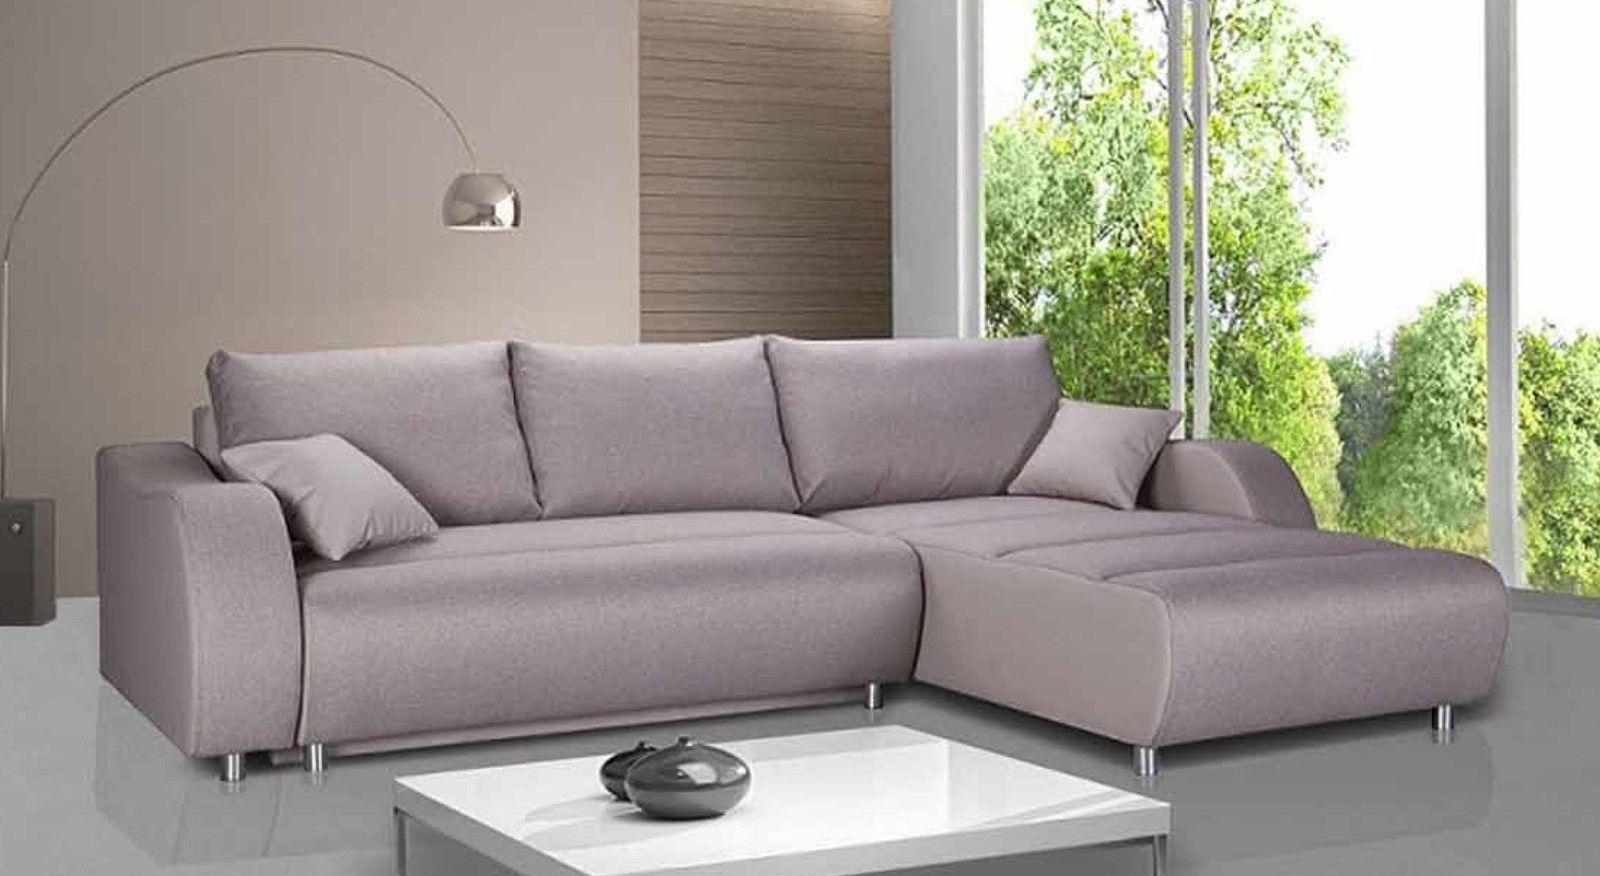 Unusual Sofas Uk - Leather Sectional Sofa within Unusual Sofas